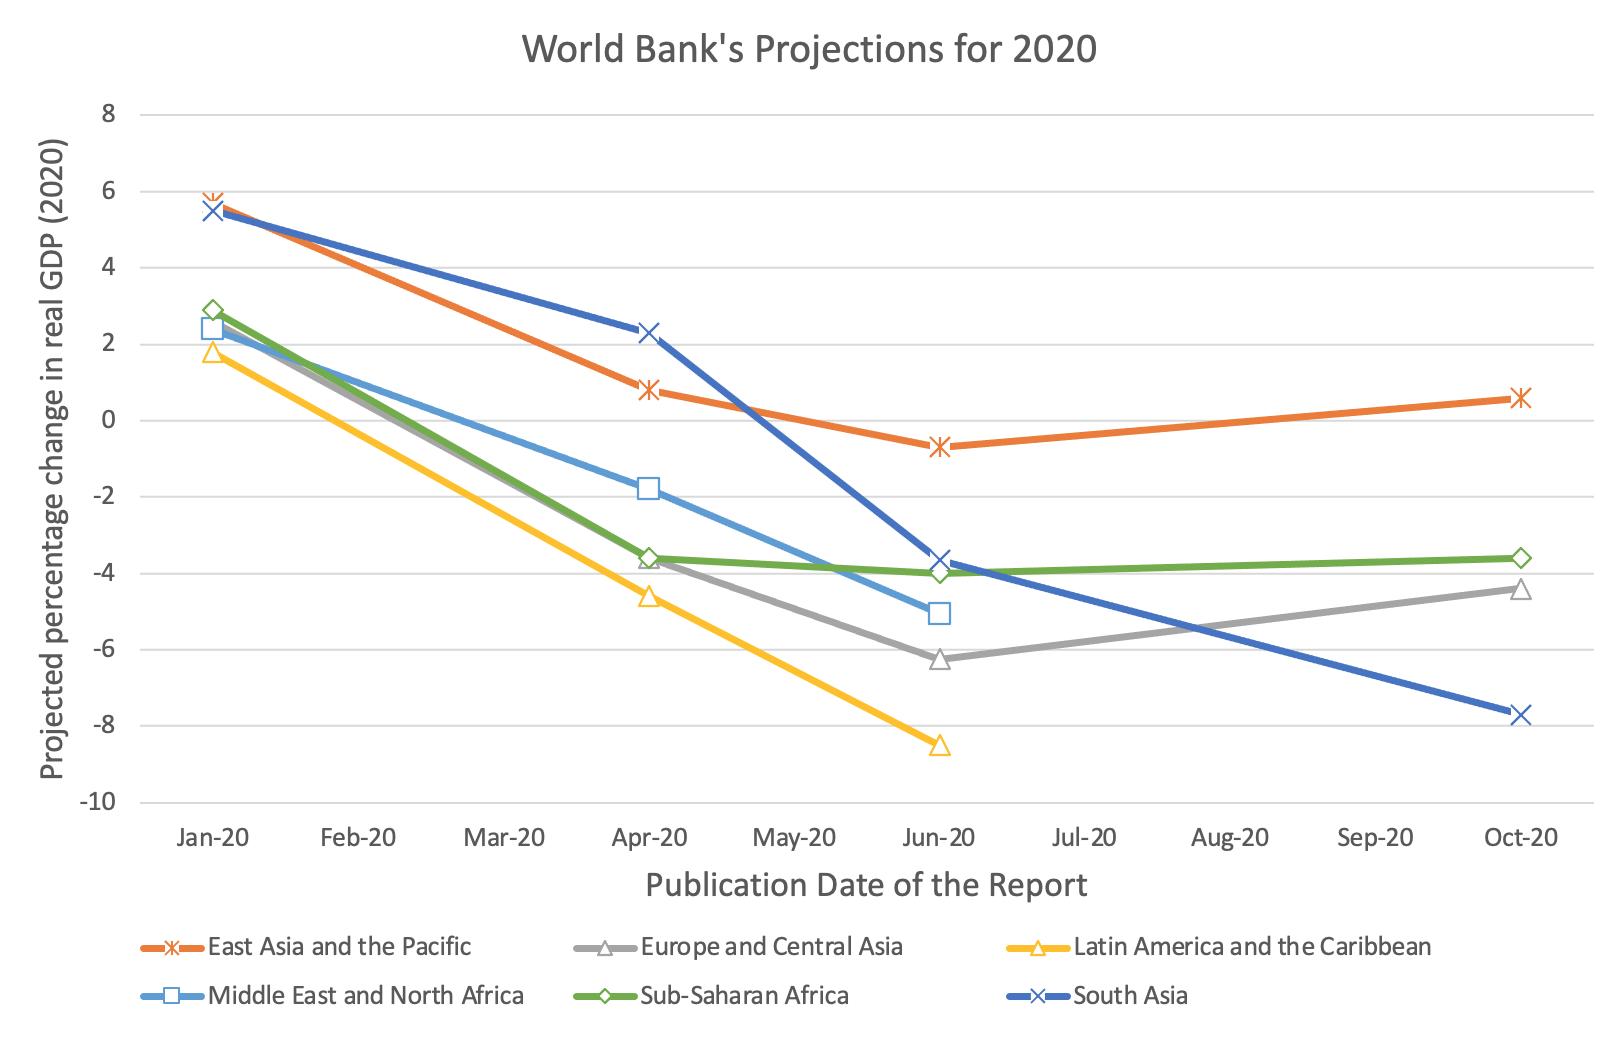 World Bank growth projections for all regions fell in the April and June 2020 estimates (versus January), then remained similar or rise slightly in October. All regions are projected to be negative except East Asia